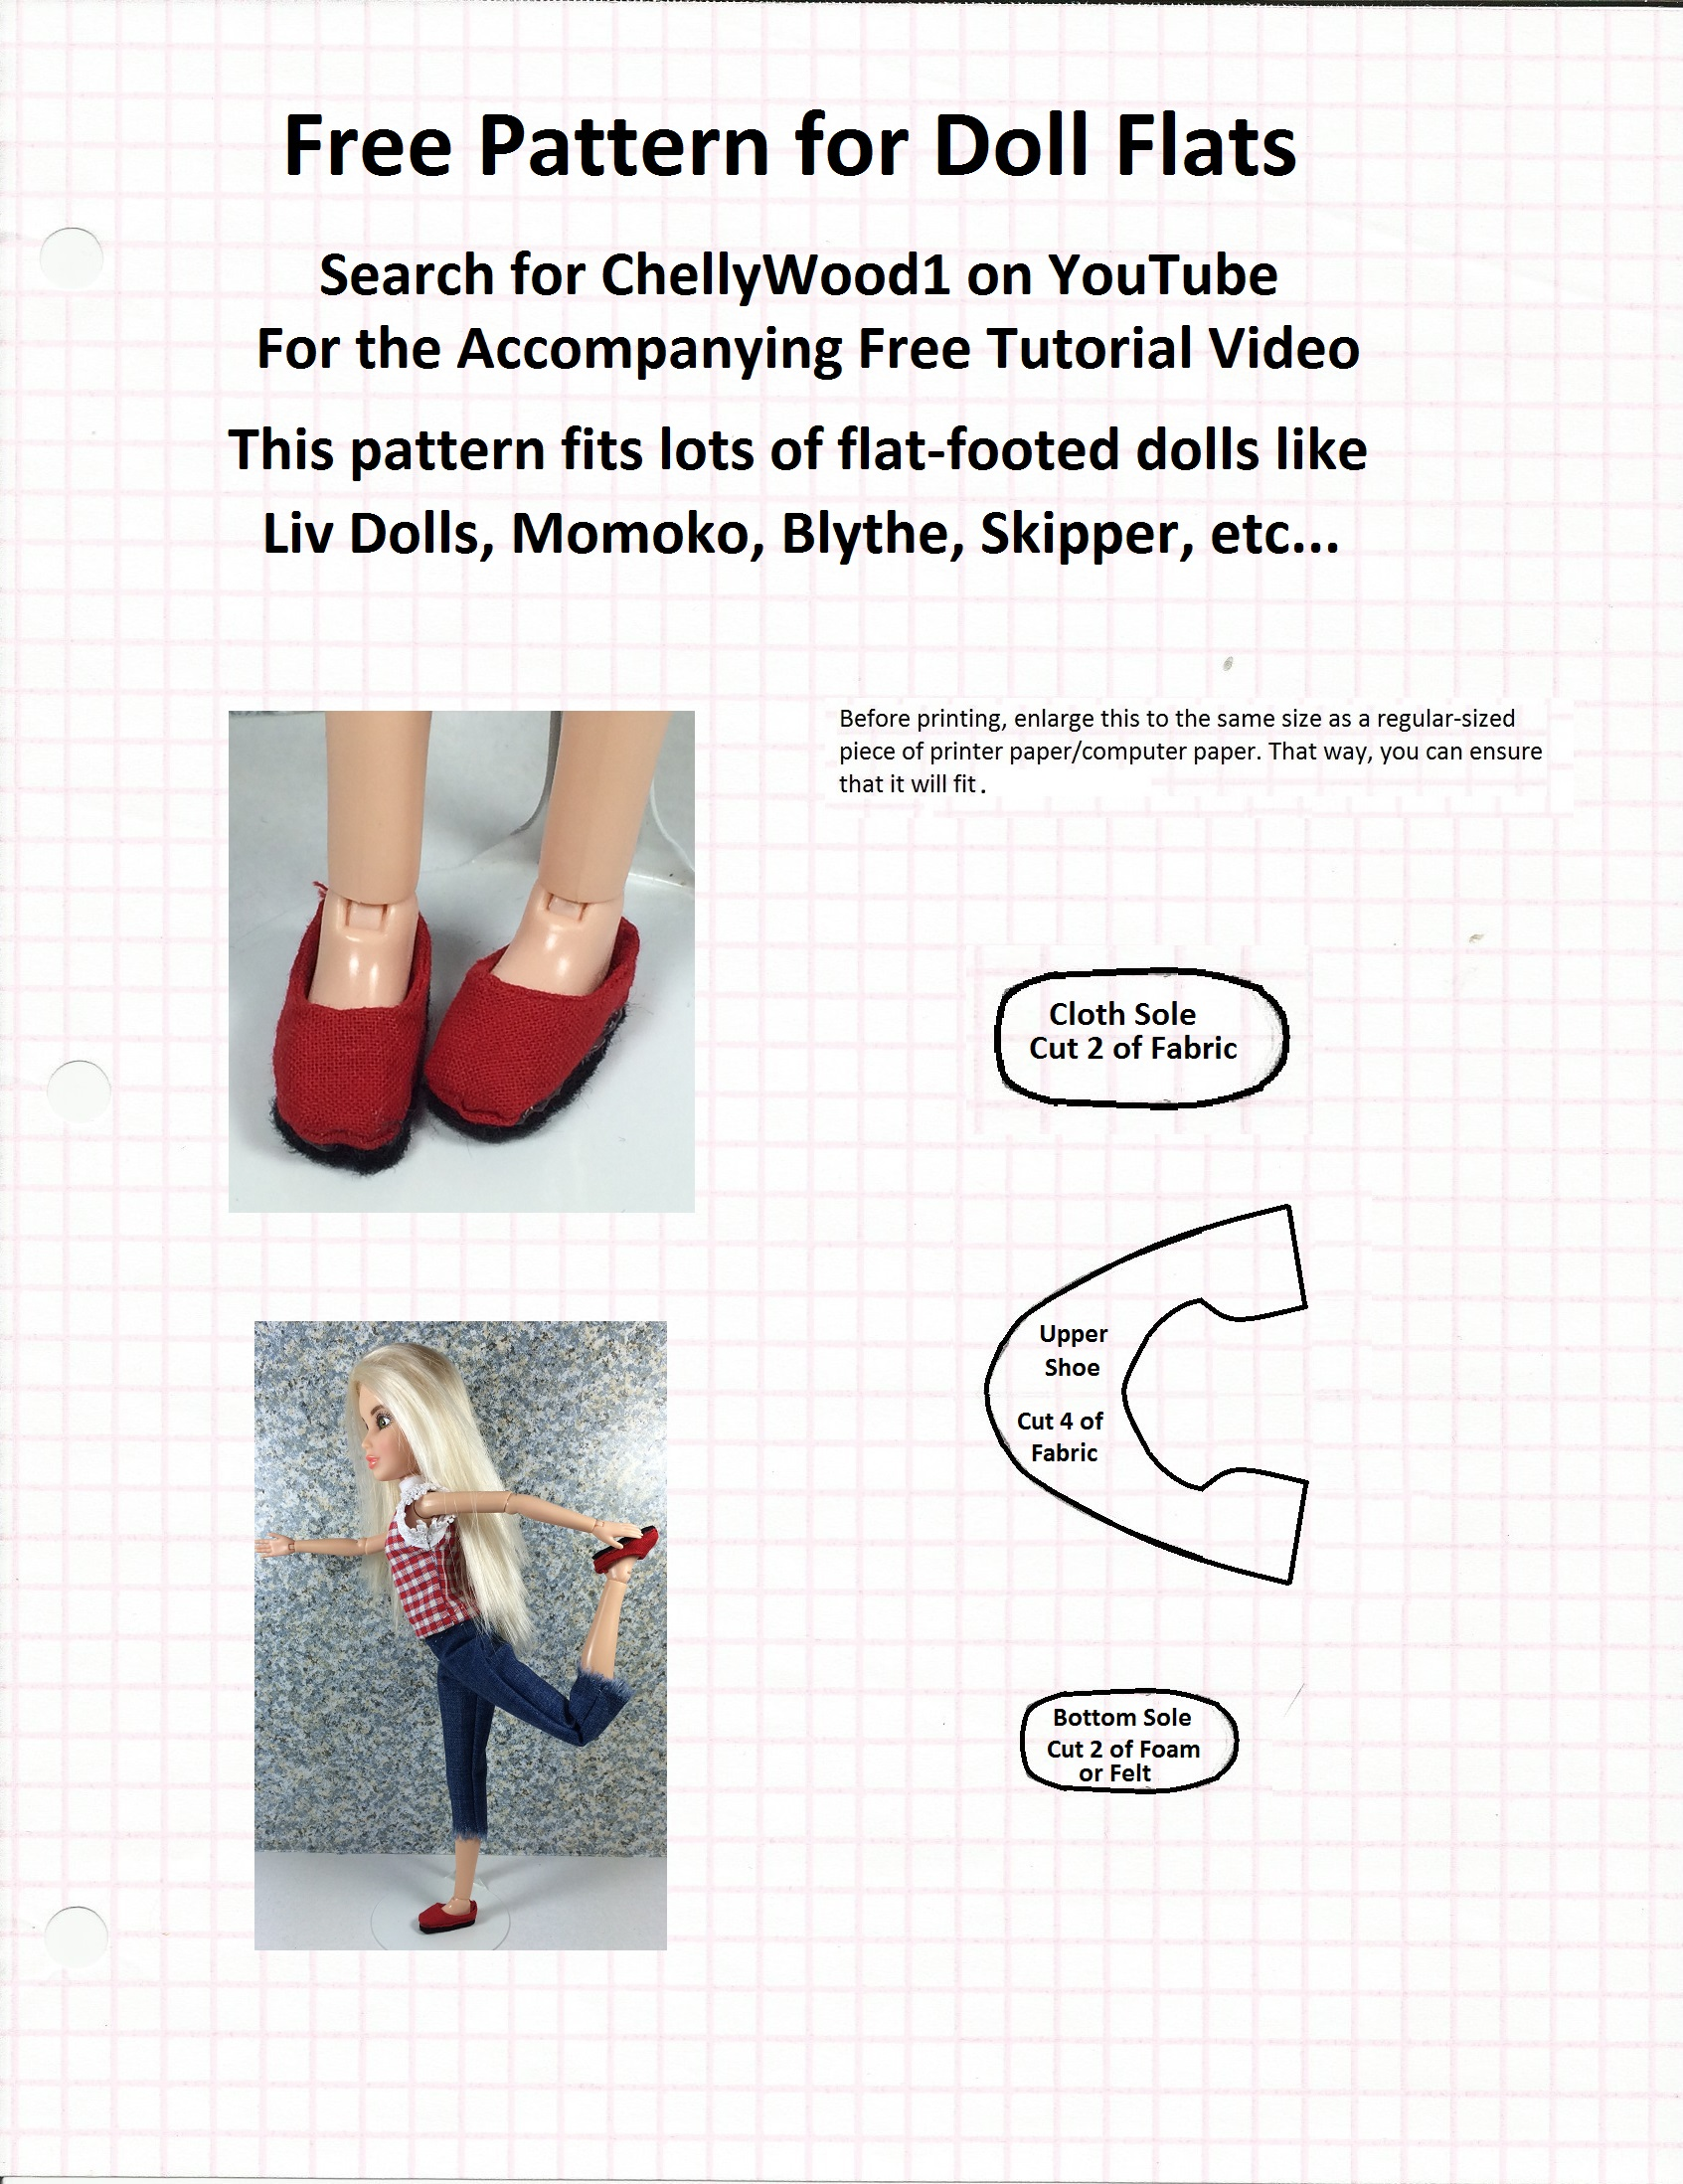 Free sewing pattern for dolls shoes chellywood chelly wood free printable pattern for making doll shoes jeuxipadfo Image collections